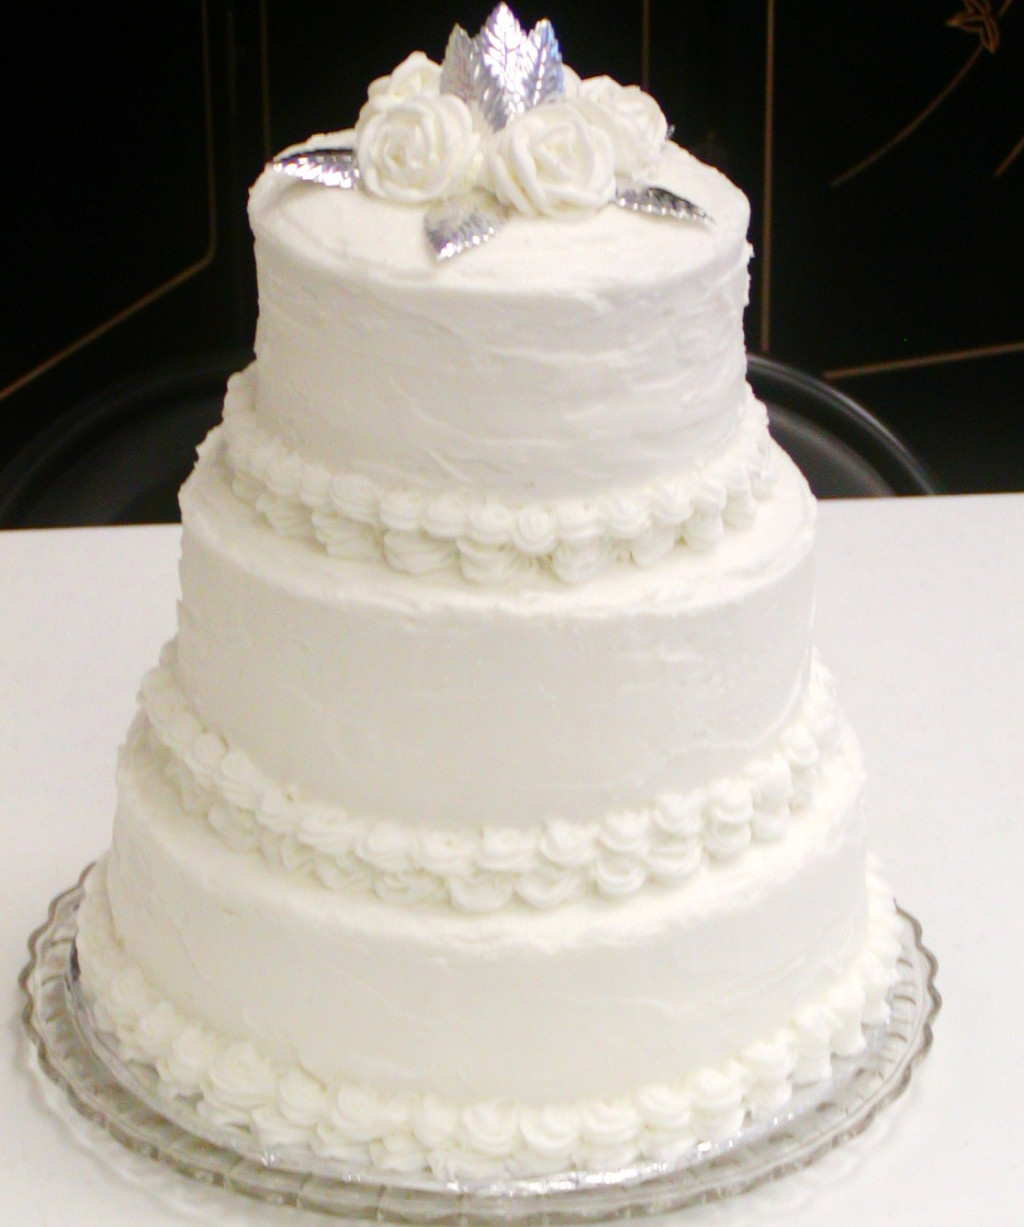 The Wedding Cake Topper: A Personal and Artistic Choice | HubPages